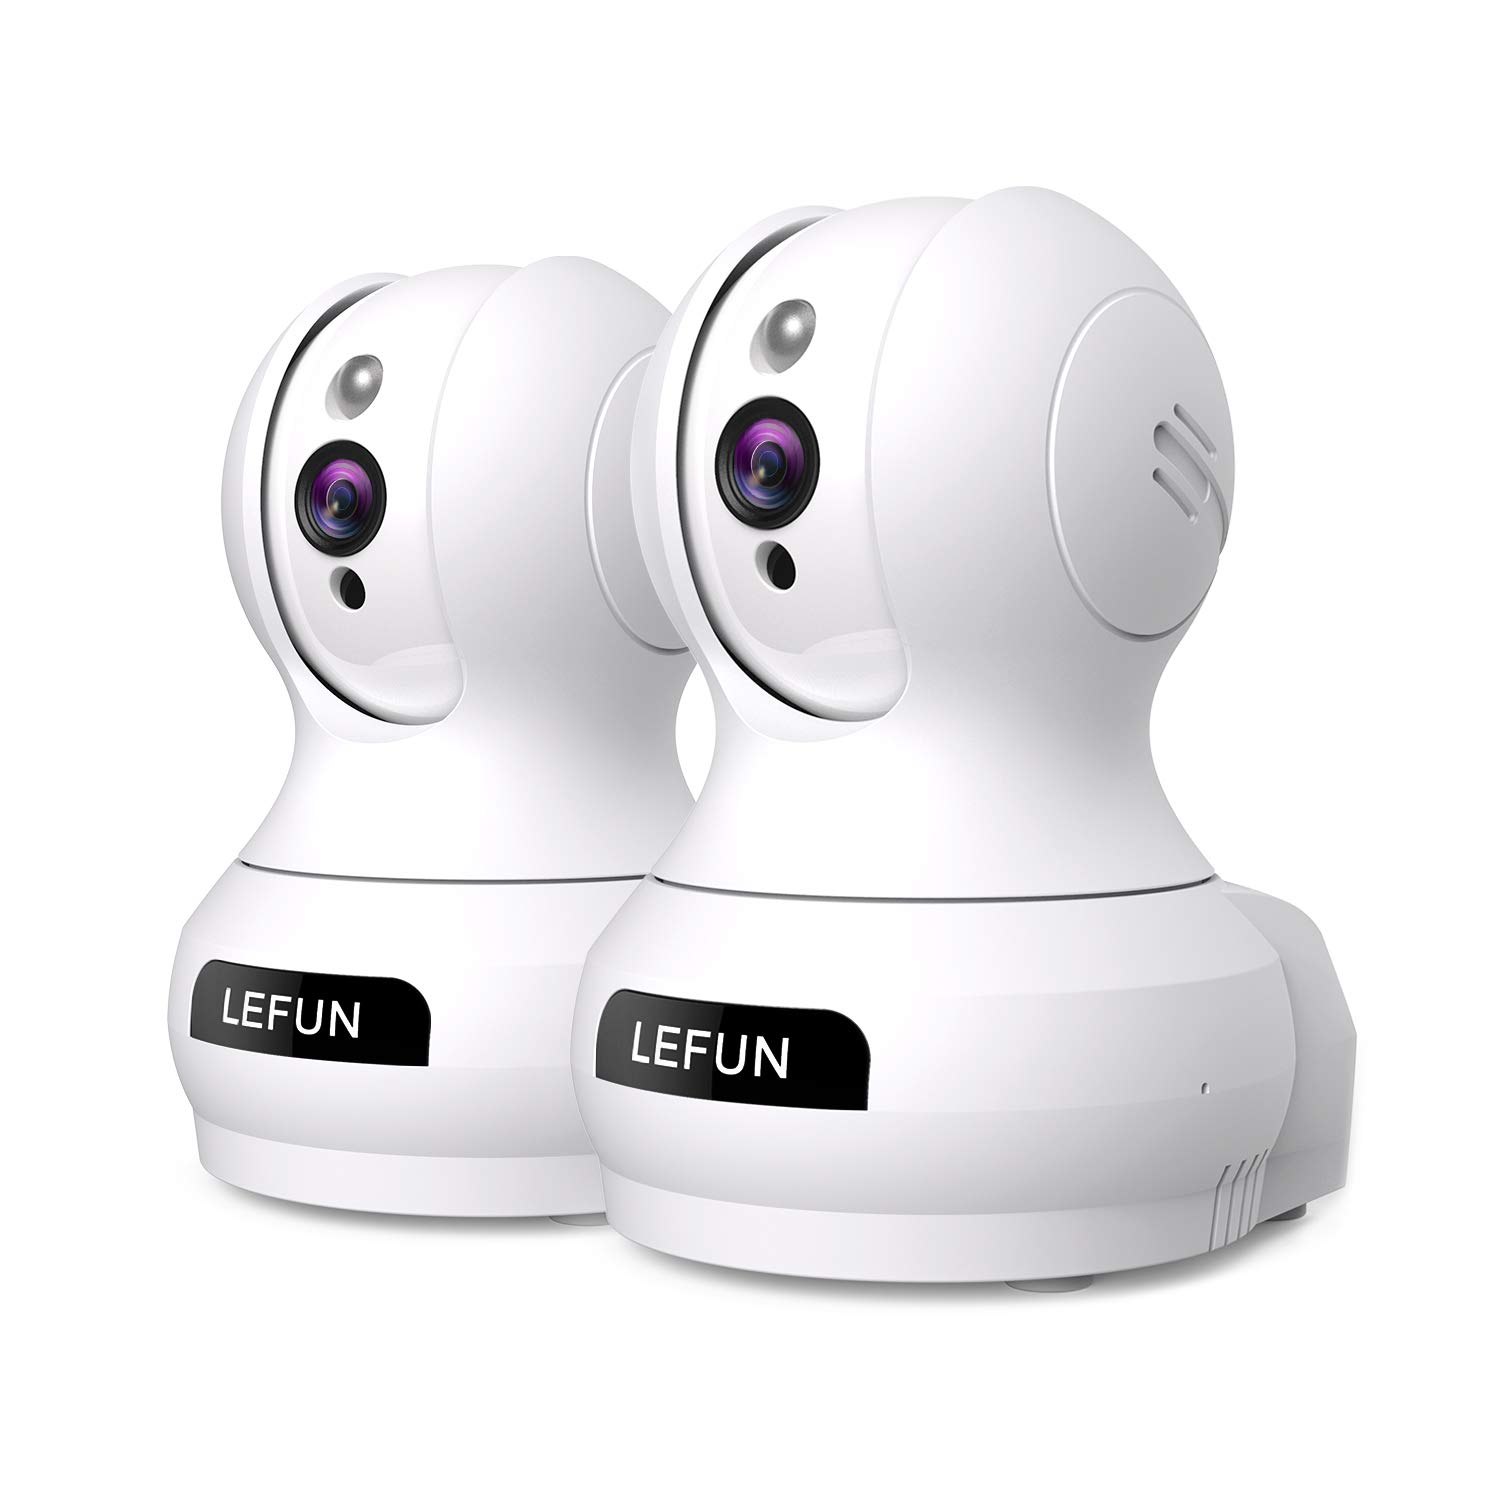 Security Camera, Lefun Indoor WiFi Camera Baby Monitor with Motion Detect Night Vision 2-Way Audio Pan/Tilt/Zoom Supports 2.4G WiFi for Home Surveillance Camera Elder Pet Monitoring (2pack-White)